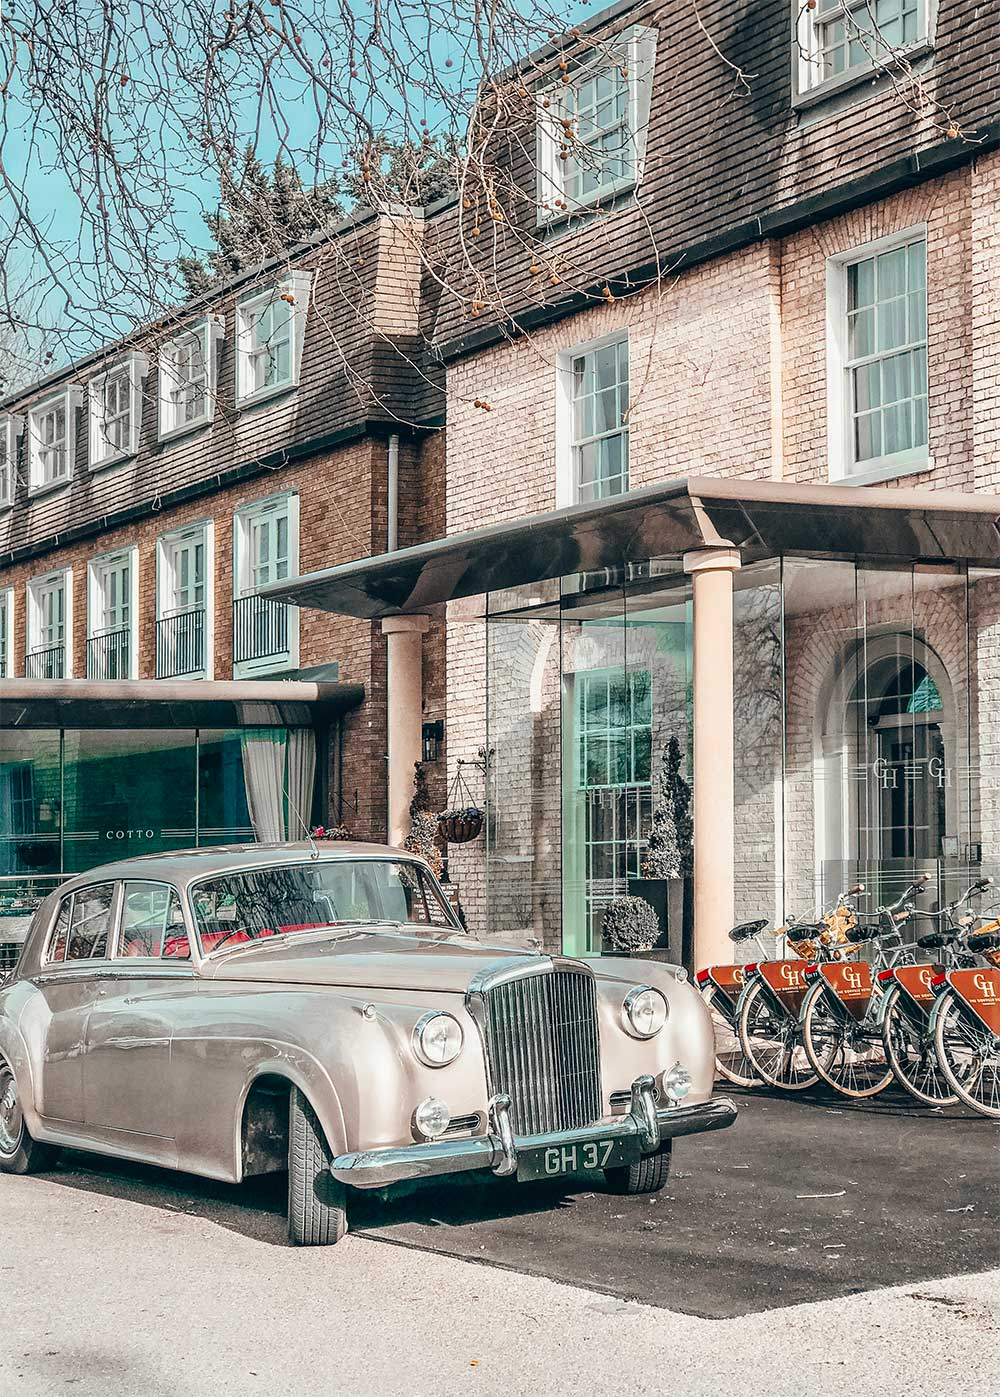 Entrance of Gonville Hotel with Bentley parked outside